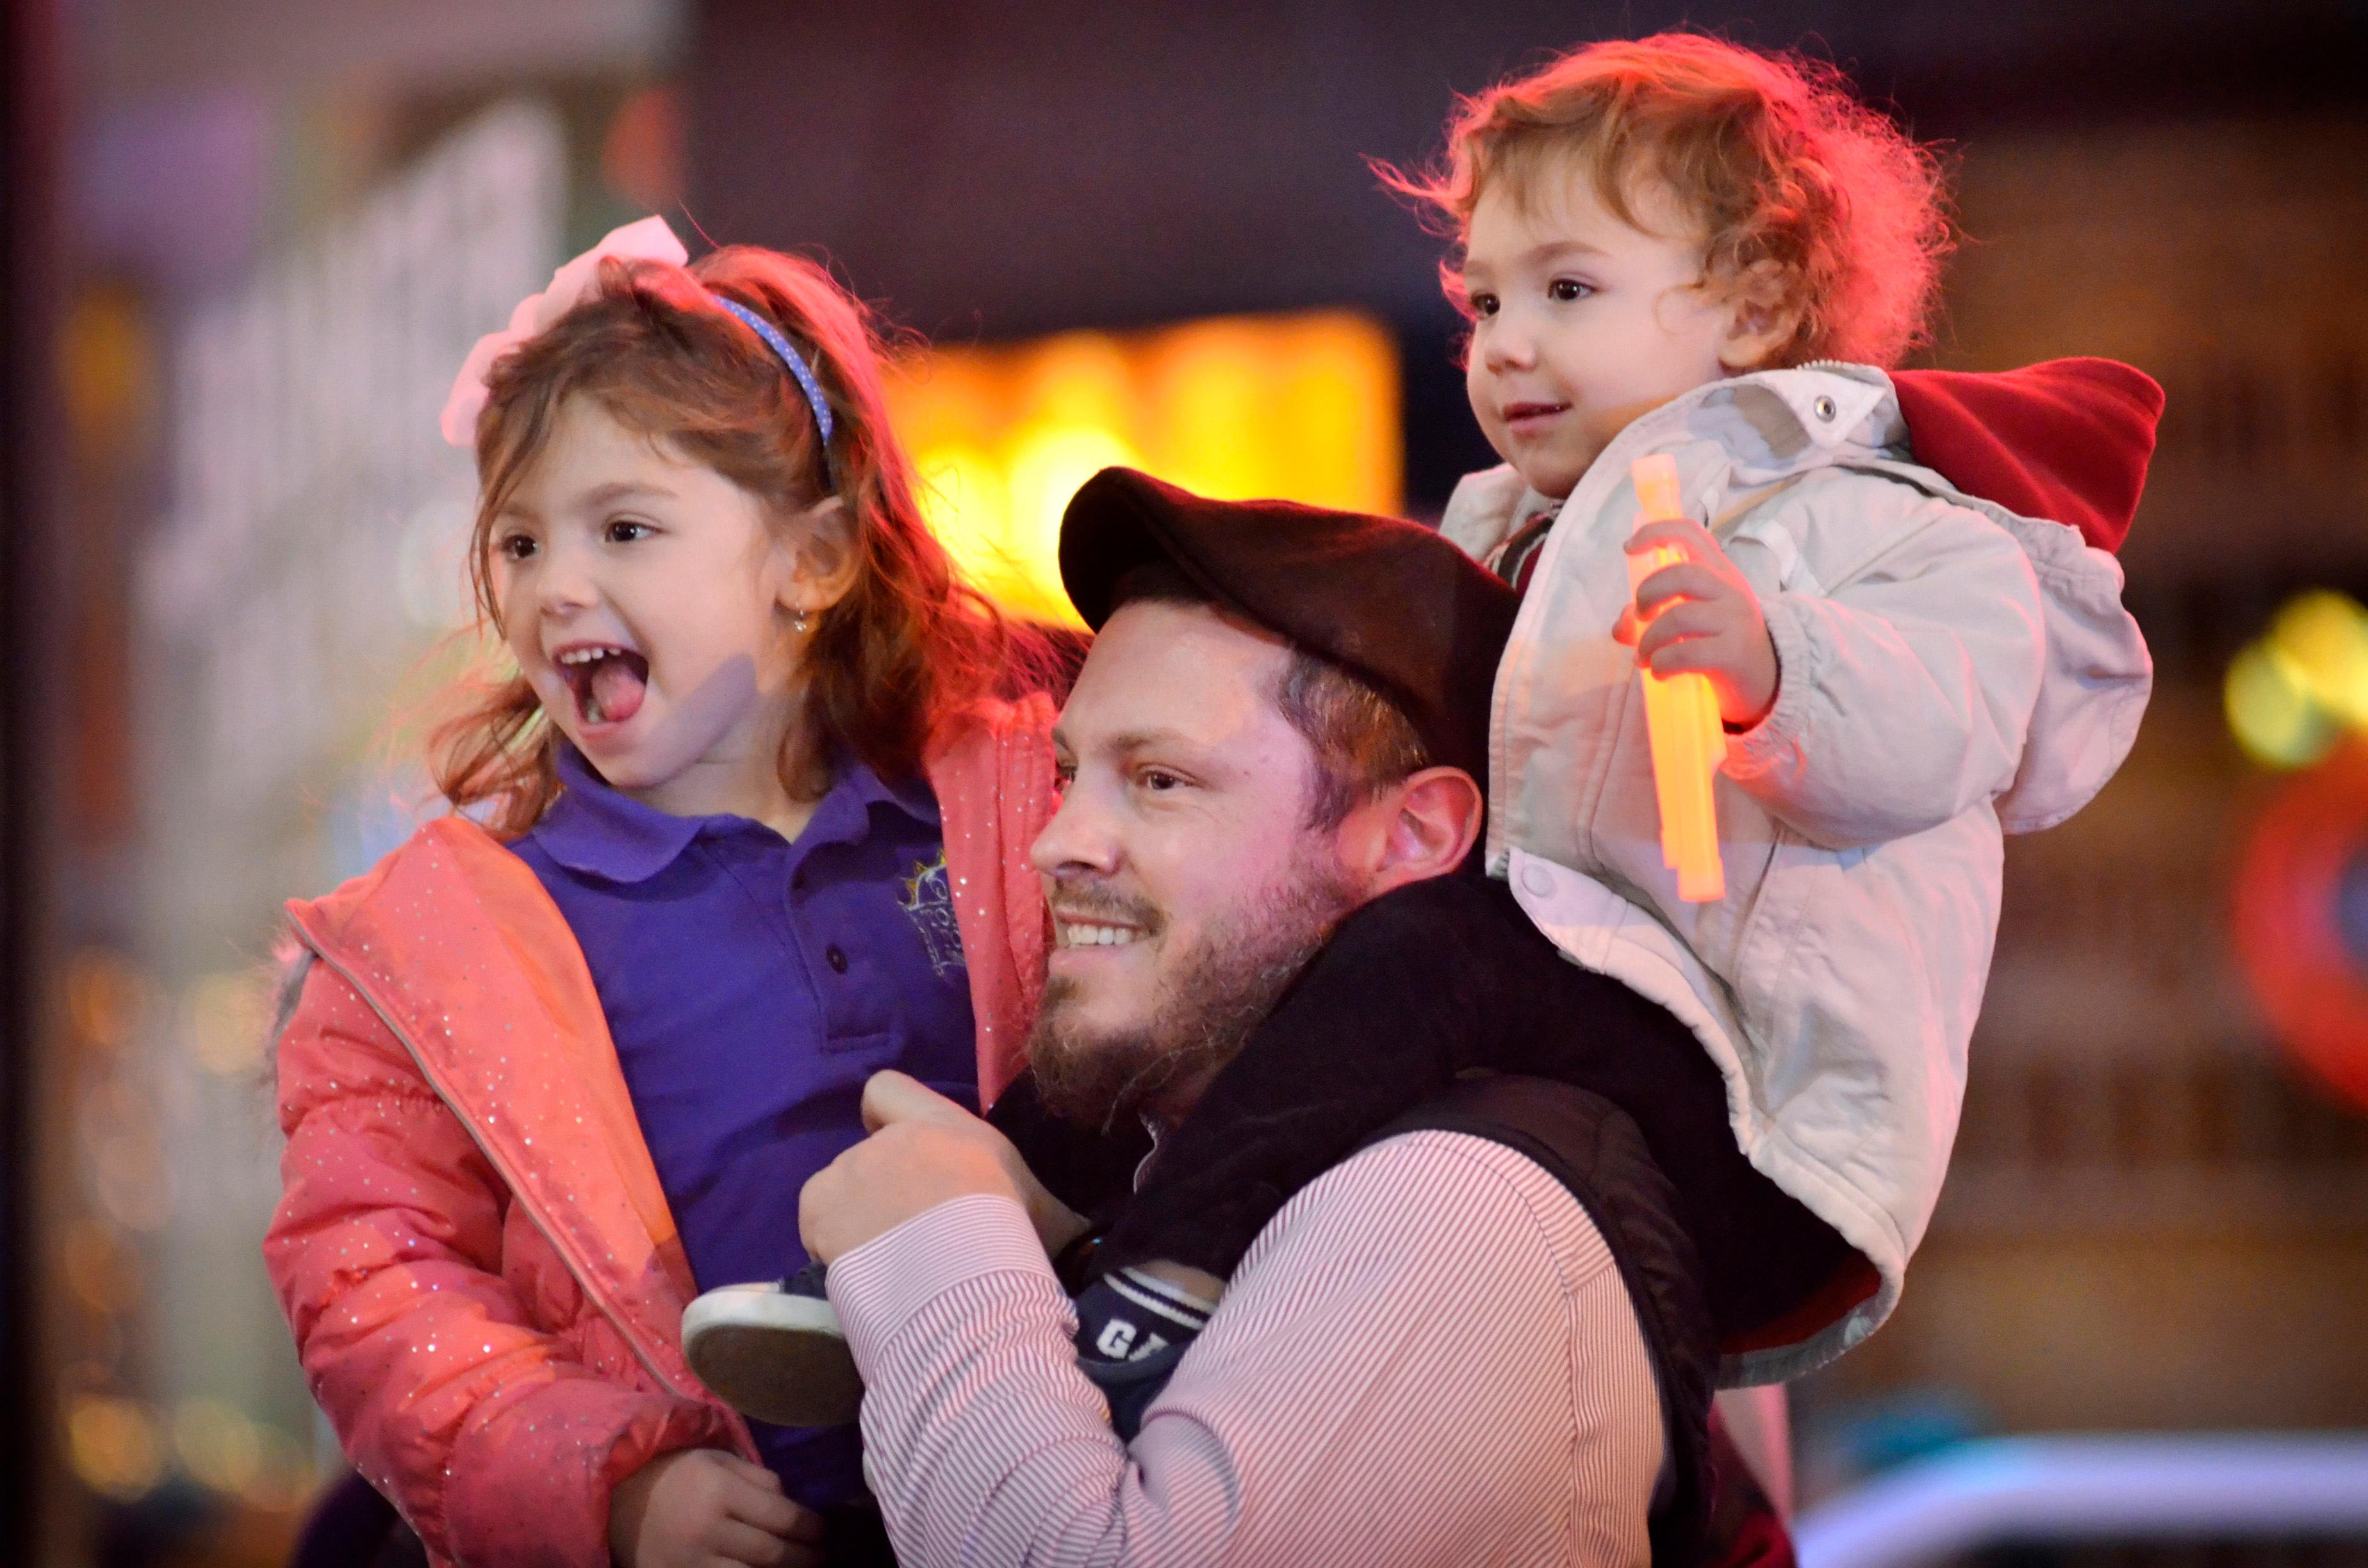 Mordechai Bogatin, center watches a menorah lighting ceremony with his daughter Rivky, left, and son Noach. Rabbi Shea Harlig, of the Chabad Jewish Center of Southern Nevada, Las Vegas Mayor Carolyn Goodman, Jonathan Jossel, CEO of the Plaza hotel-casino, and Patrick Hughes, President and CEO of Fremont Street Experience, were on hand for the first night of Hanukkah which was marked with the lighting of a 20-foot Grand Menorah on Fremont Street in downtown Las Vegas on Tuesday, Dec. 12, 2017. CREDIT: Bill Hughes/Las Vegas News Bureau